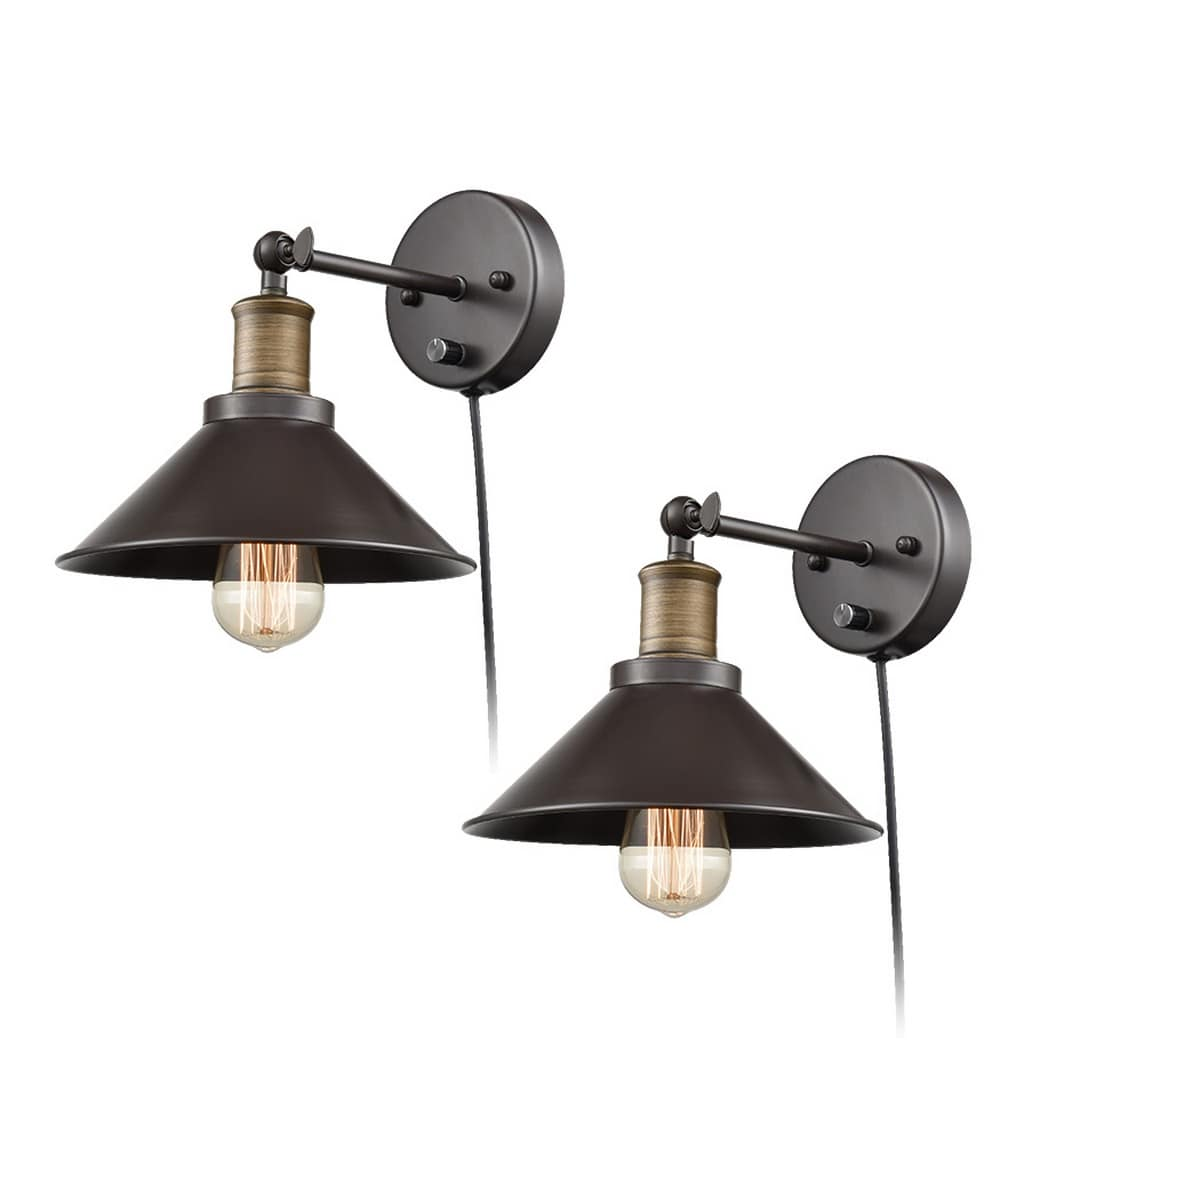 Industrial Swing Arm Hardwired & Plug-in Wall Sconce-2 Pack